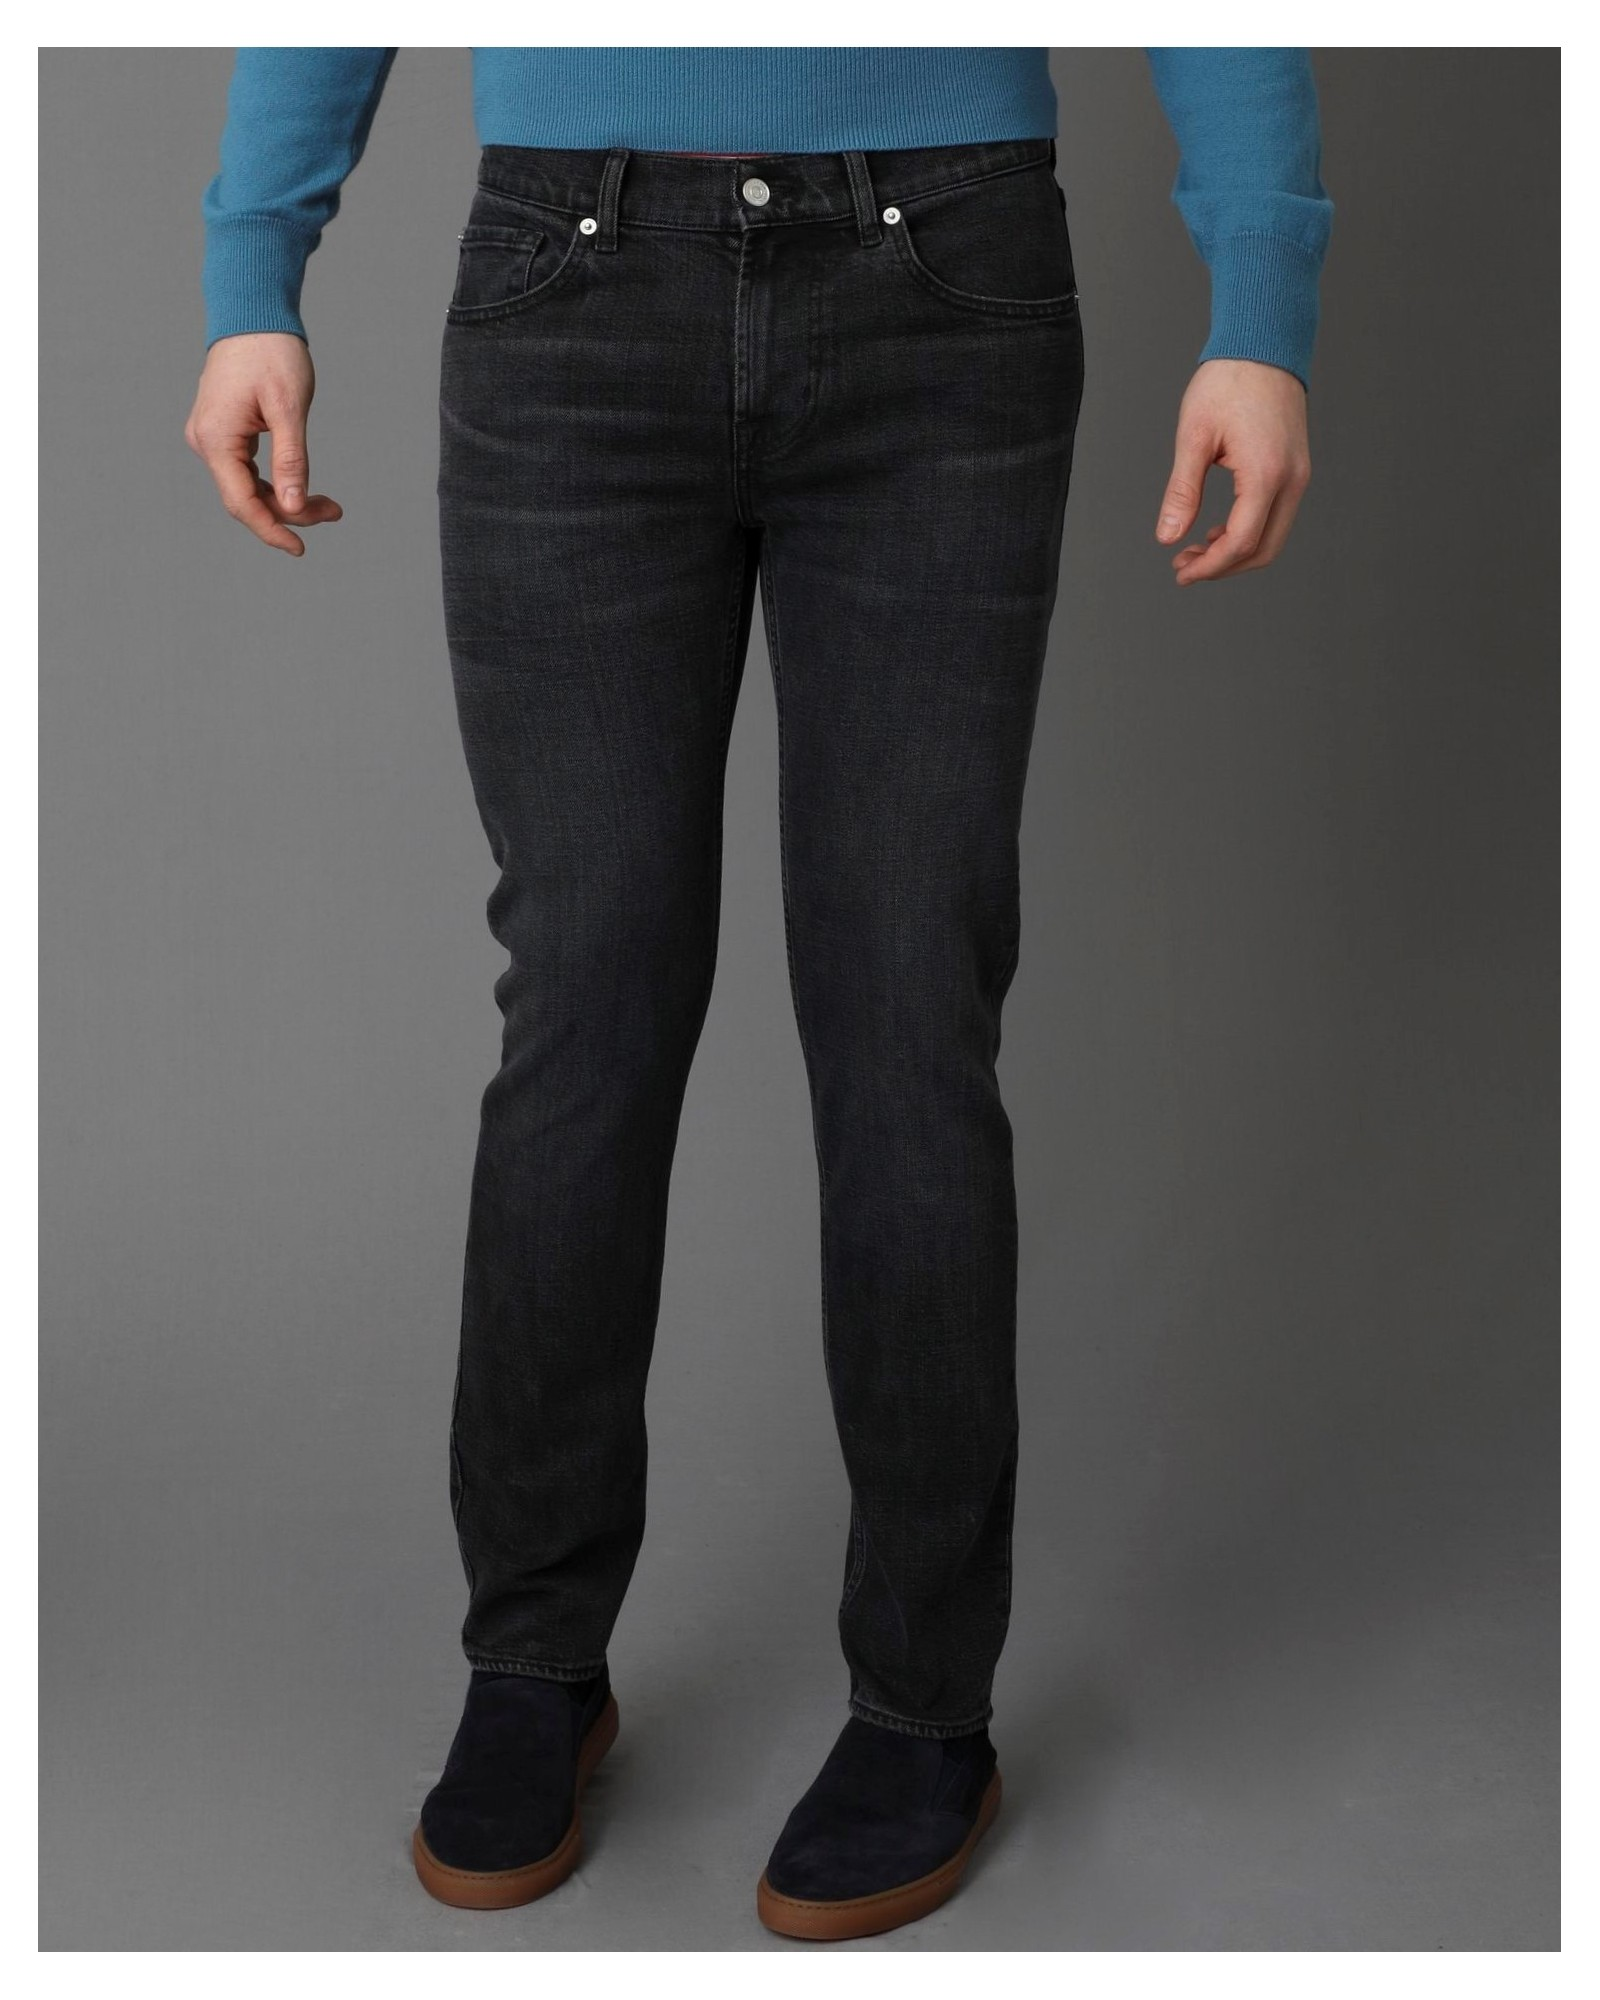 Jean noir 7 for All Mankind